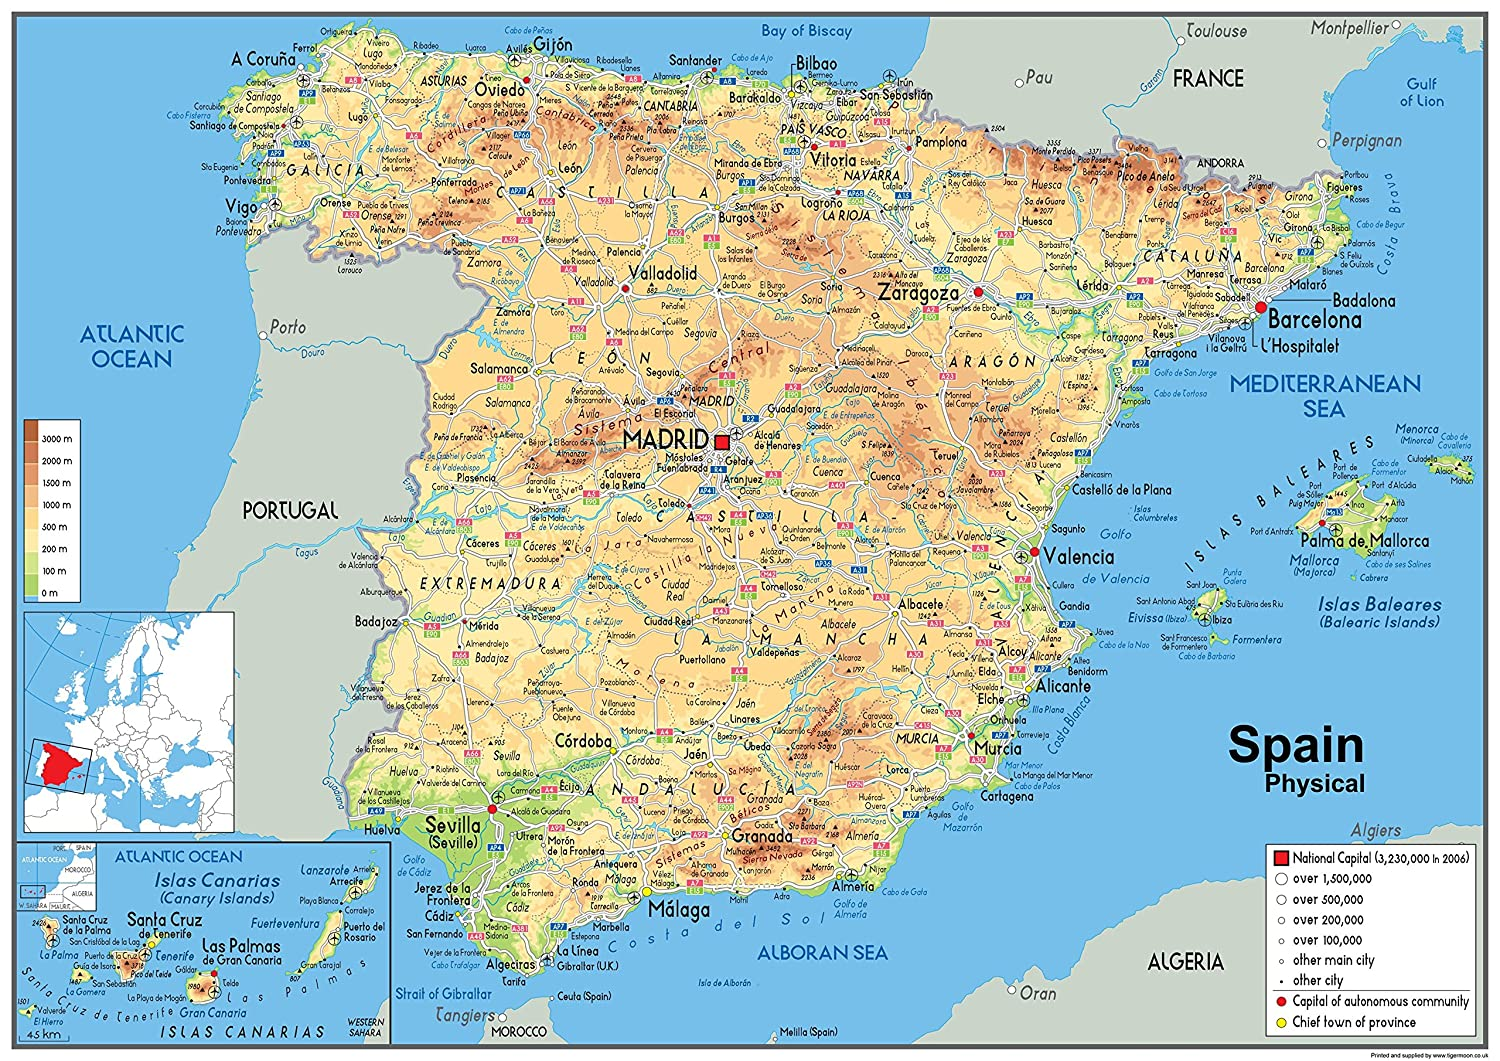 Map Of Spain Almeria.Spain Physical Map Paper Laminated A2 Size 42 X 59 4 Cm